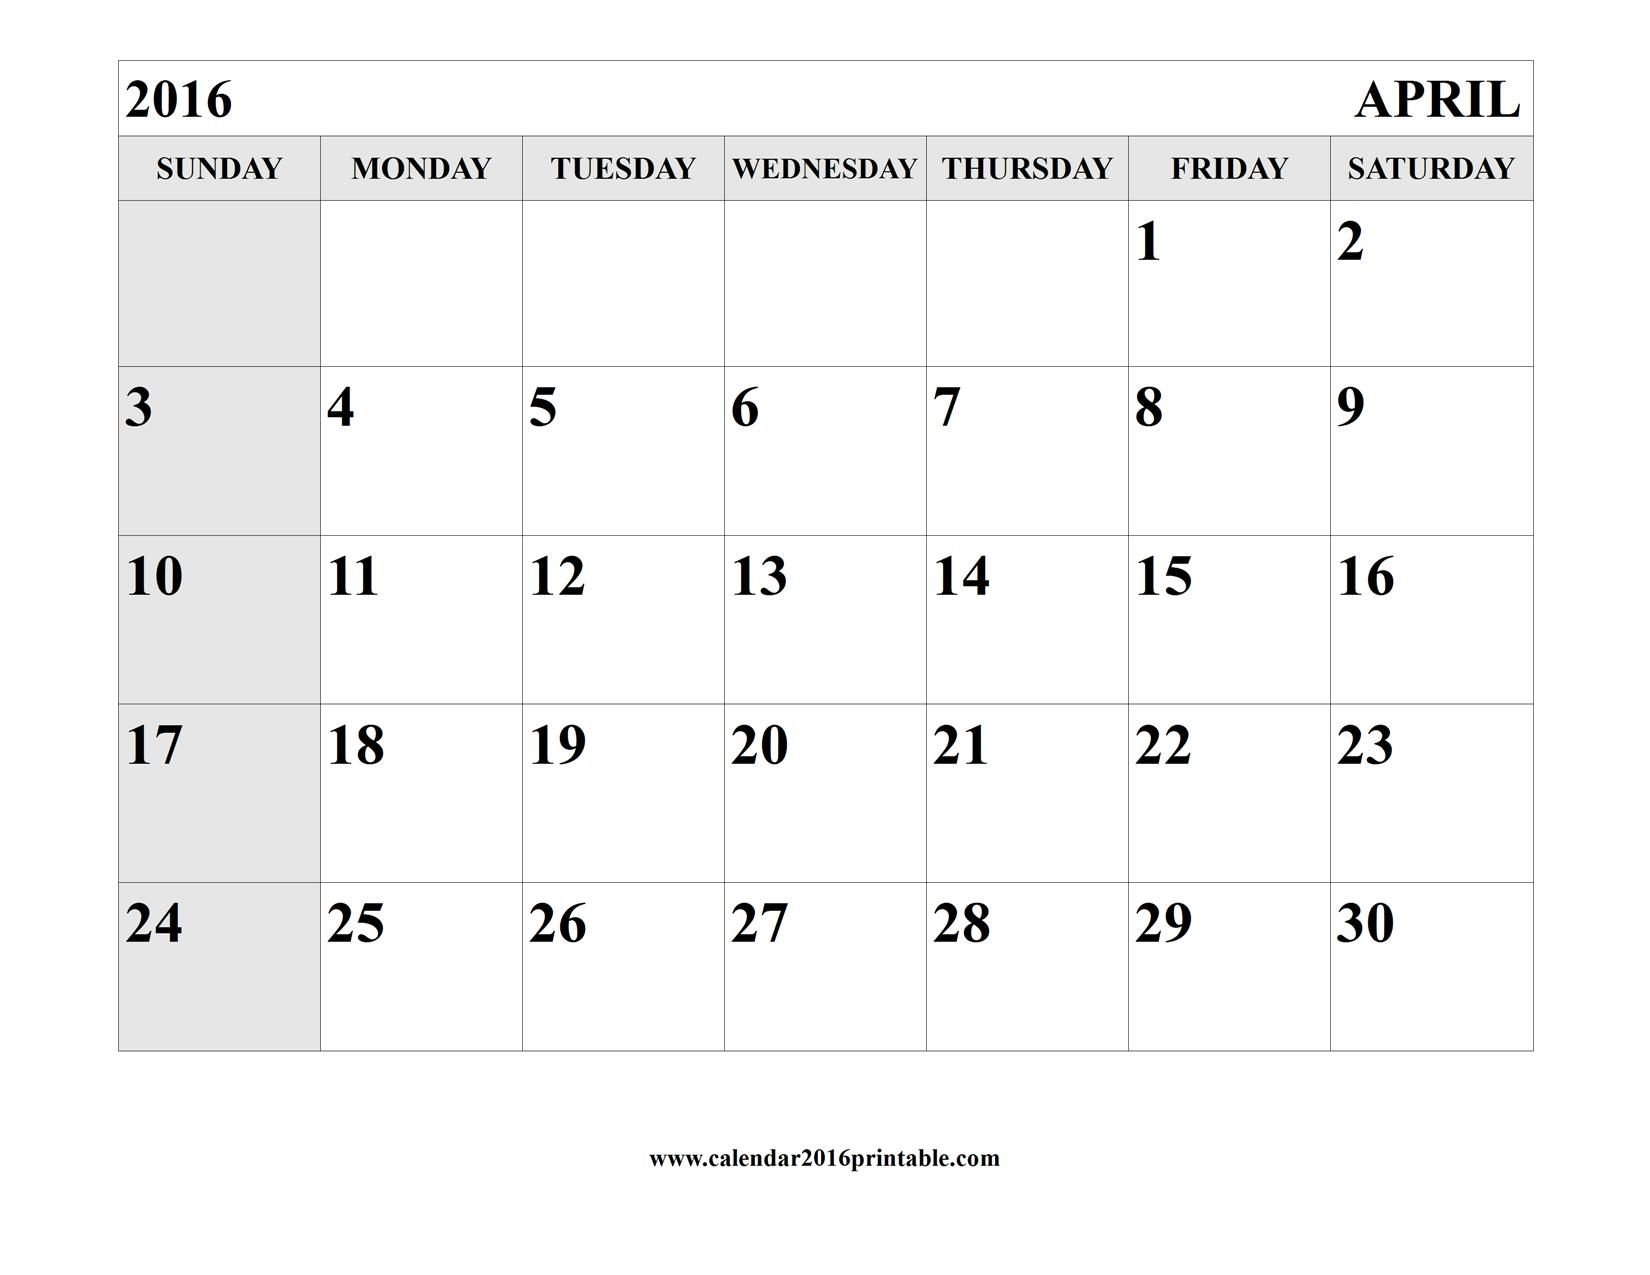 April 2016 Calendar Printable Template | Calendar Template Calanda Templete That I Can Edit